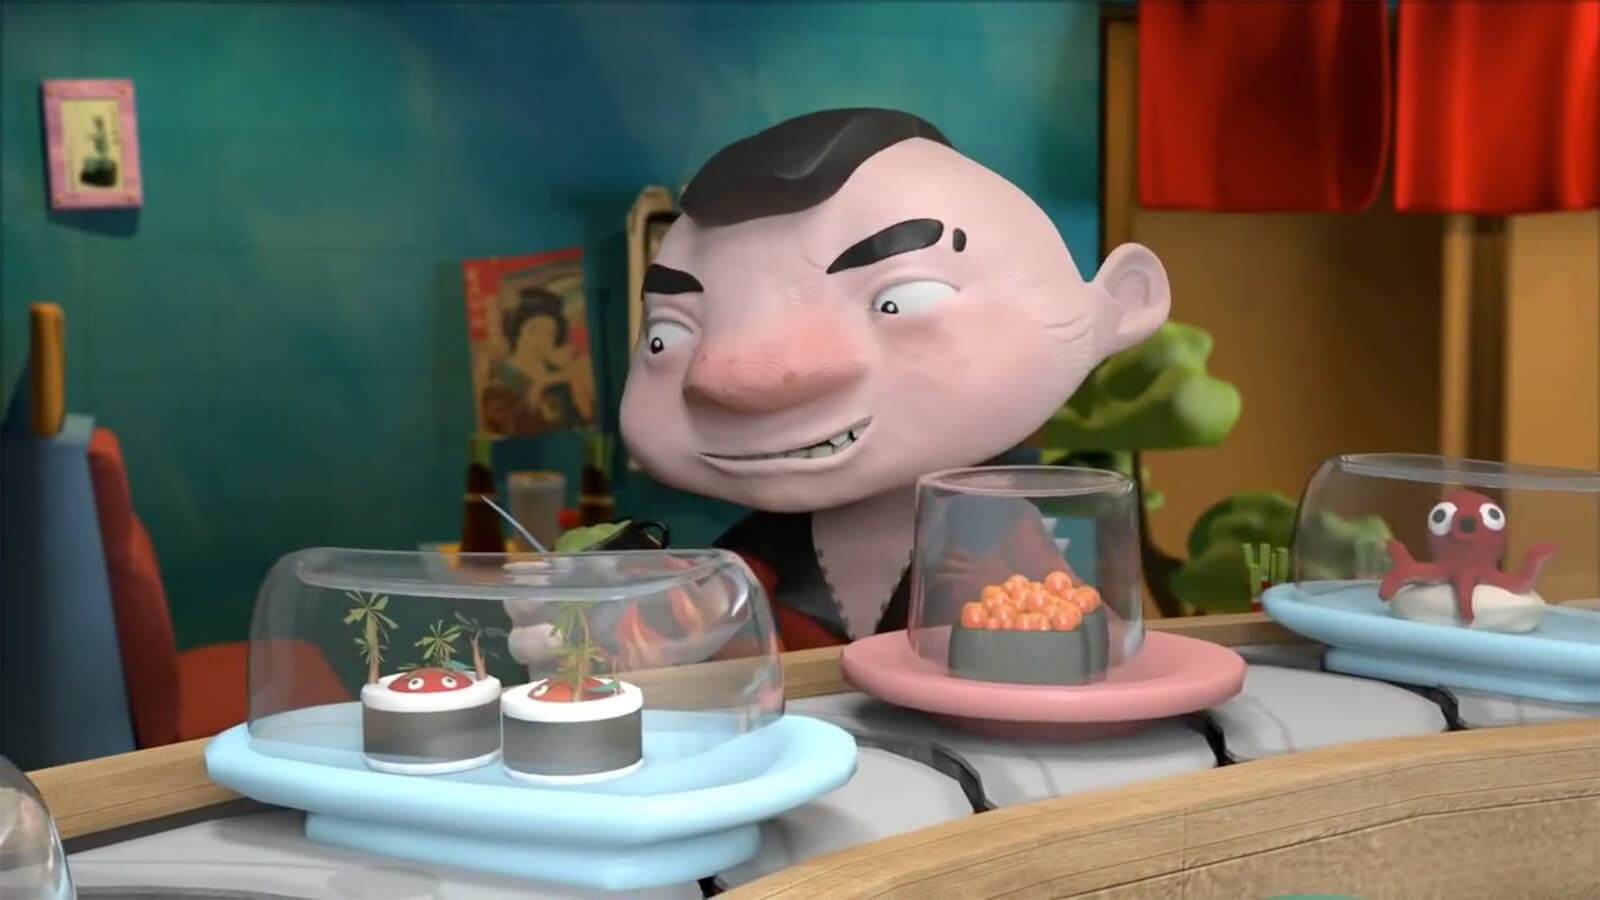 A short man with a mohawk haircut sits behind a sushi conveyor belt with playes of inventive creations under glass.